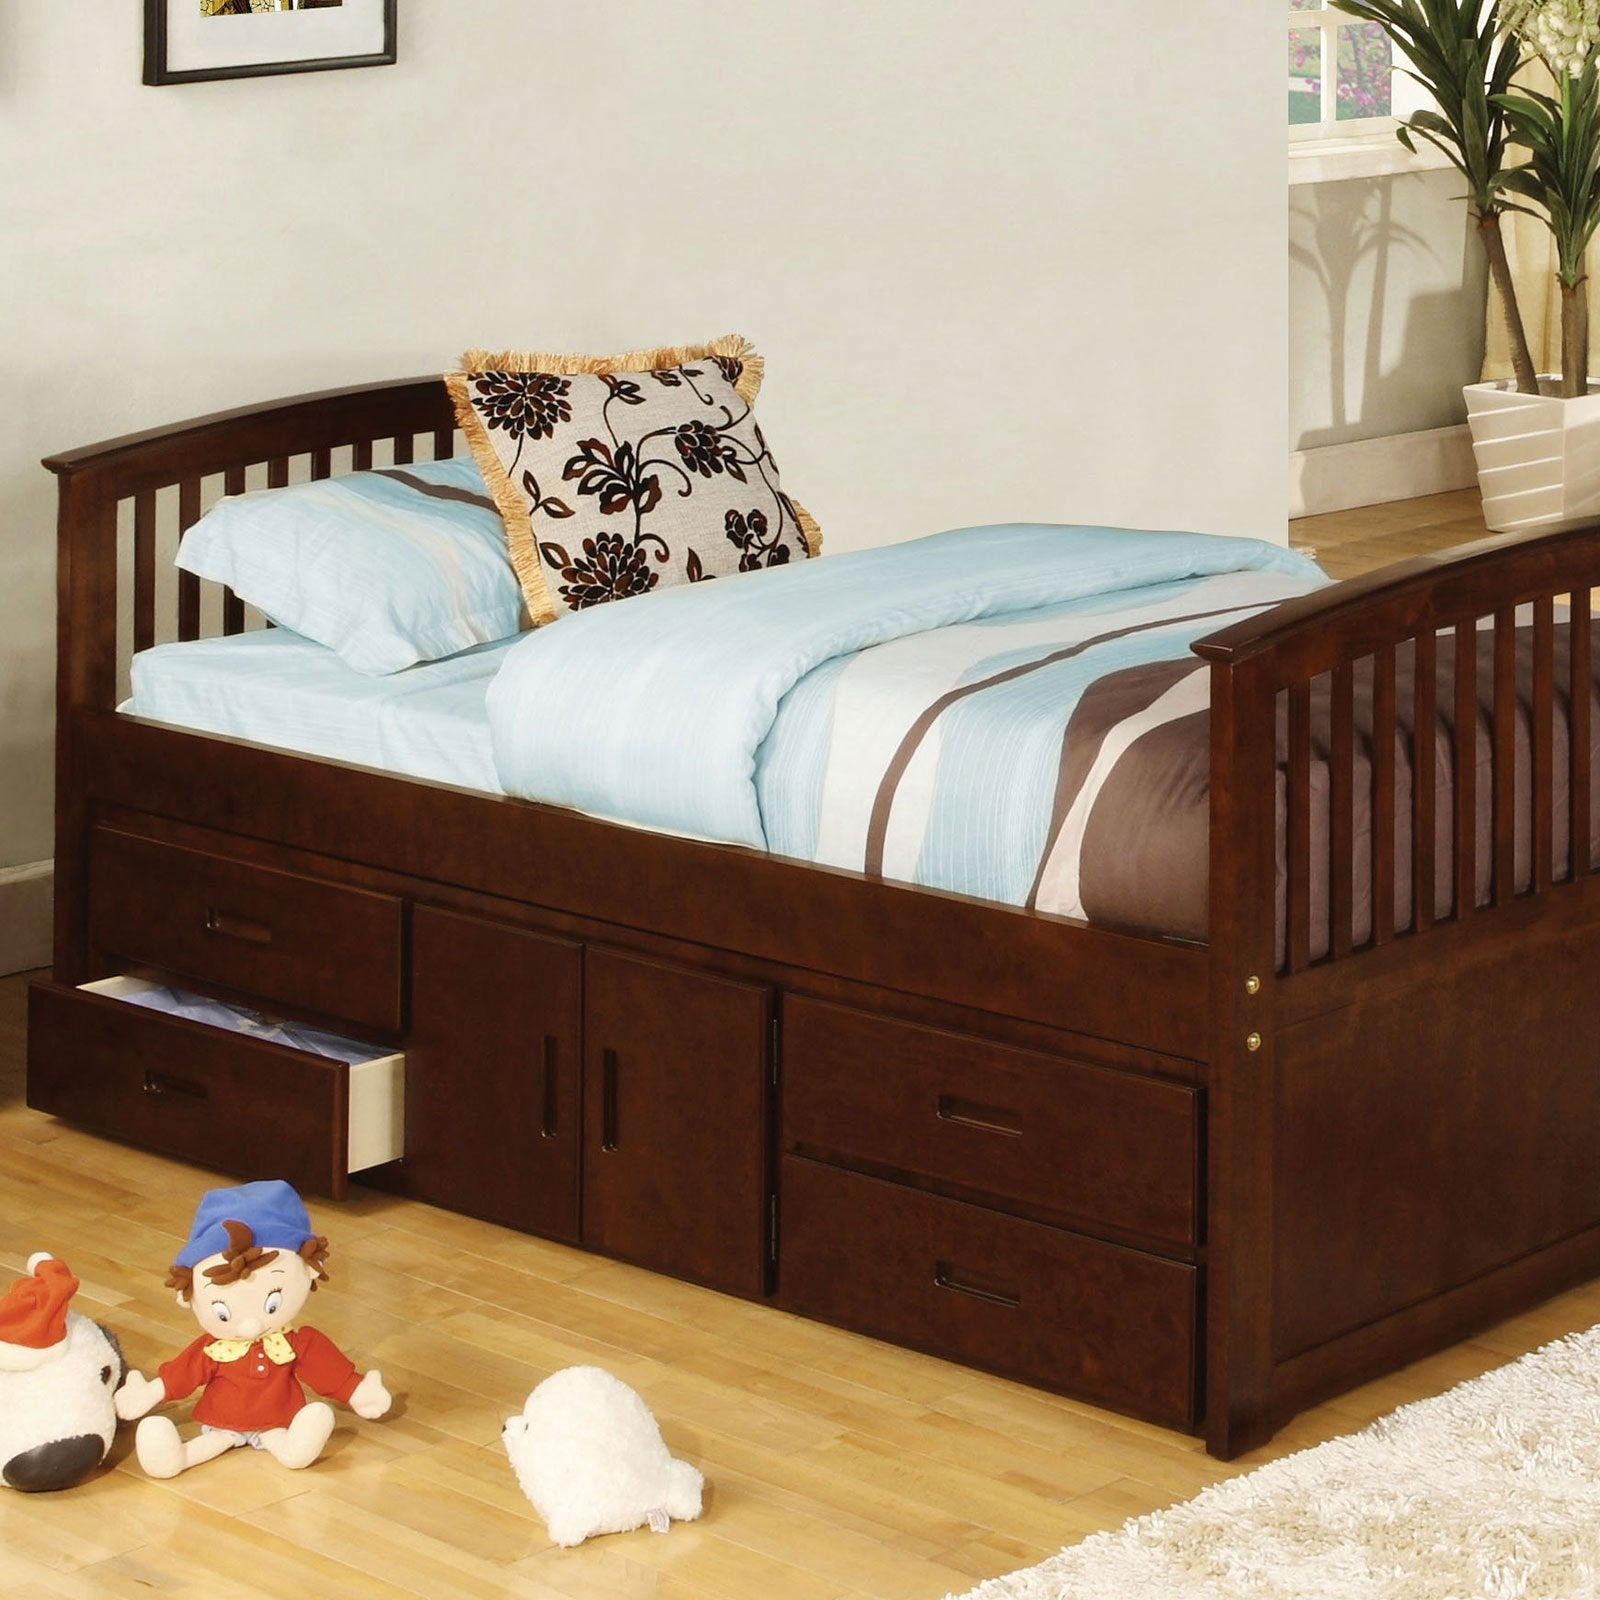 Caballero Captain Twin Bed w- 4 Drawers + Storage - InteriorDesignsToGo.com